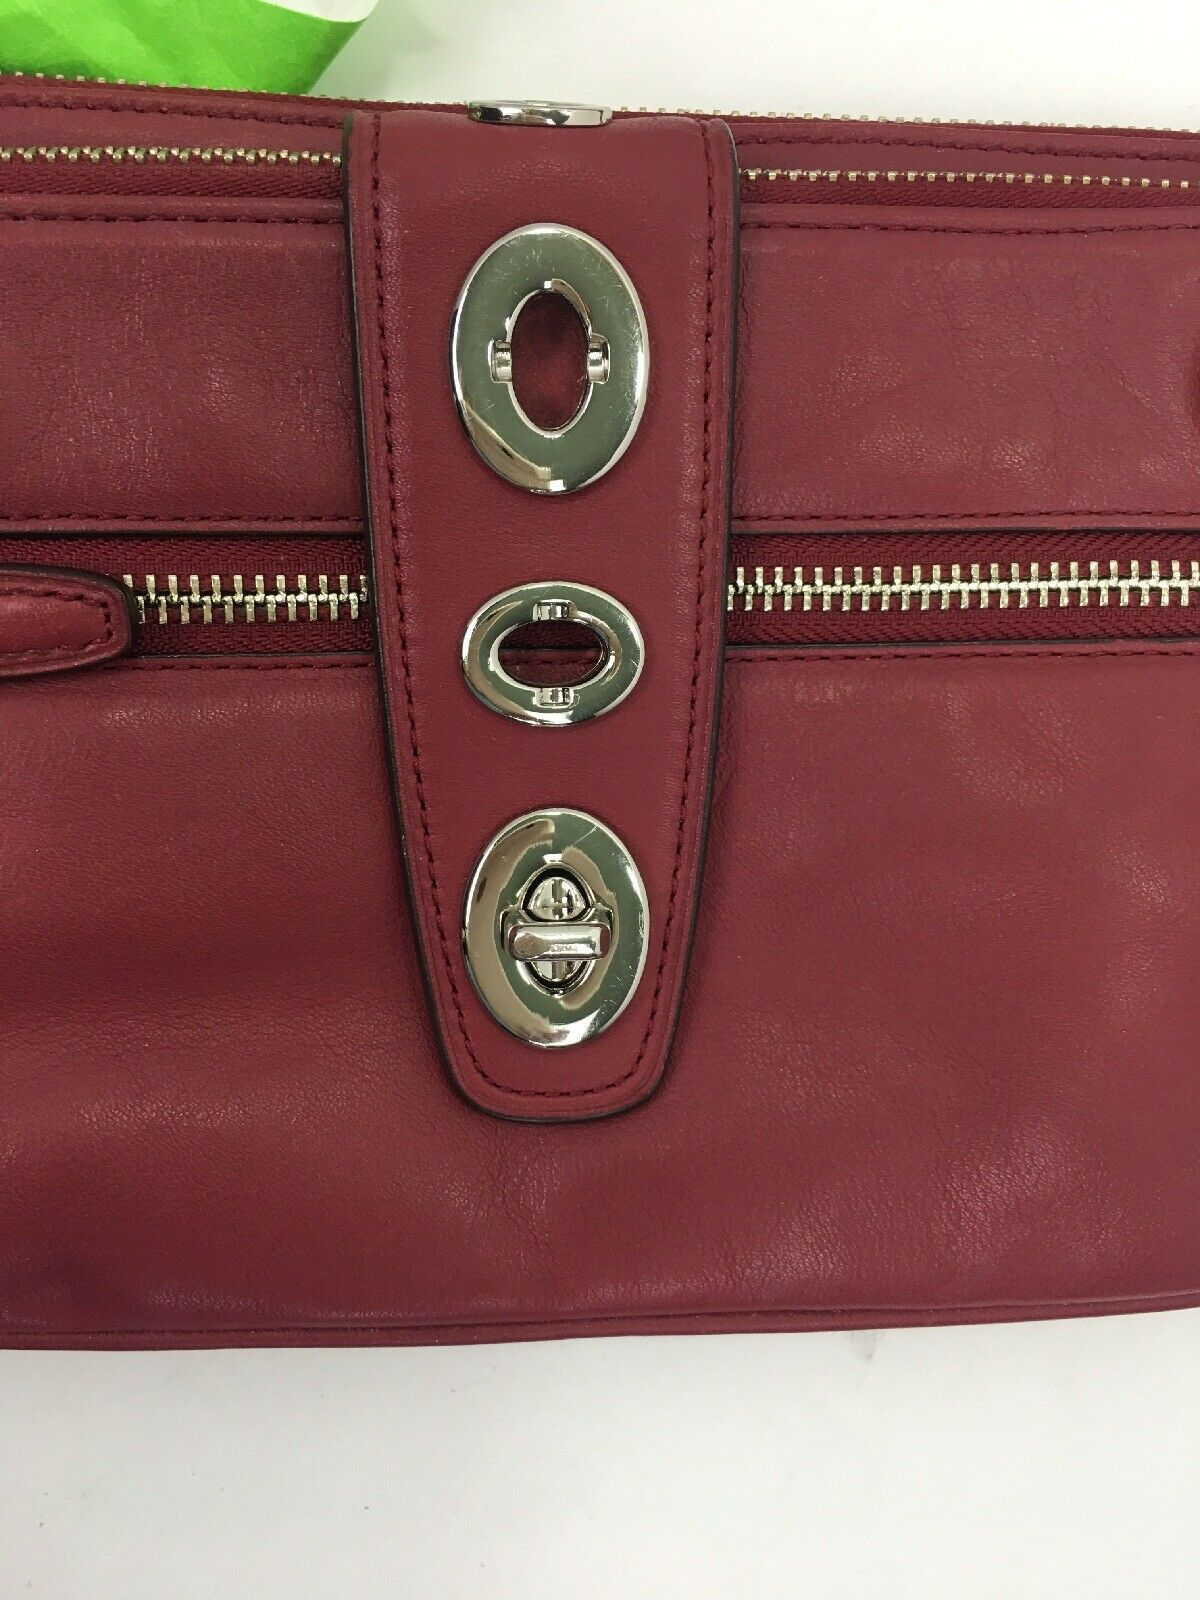 Coach Archival Wristlet 40207 Legacy Red Glove Leather Turnlock Clutch Bag B26 image 5